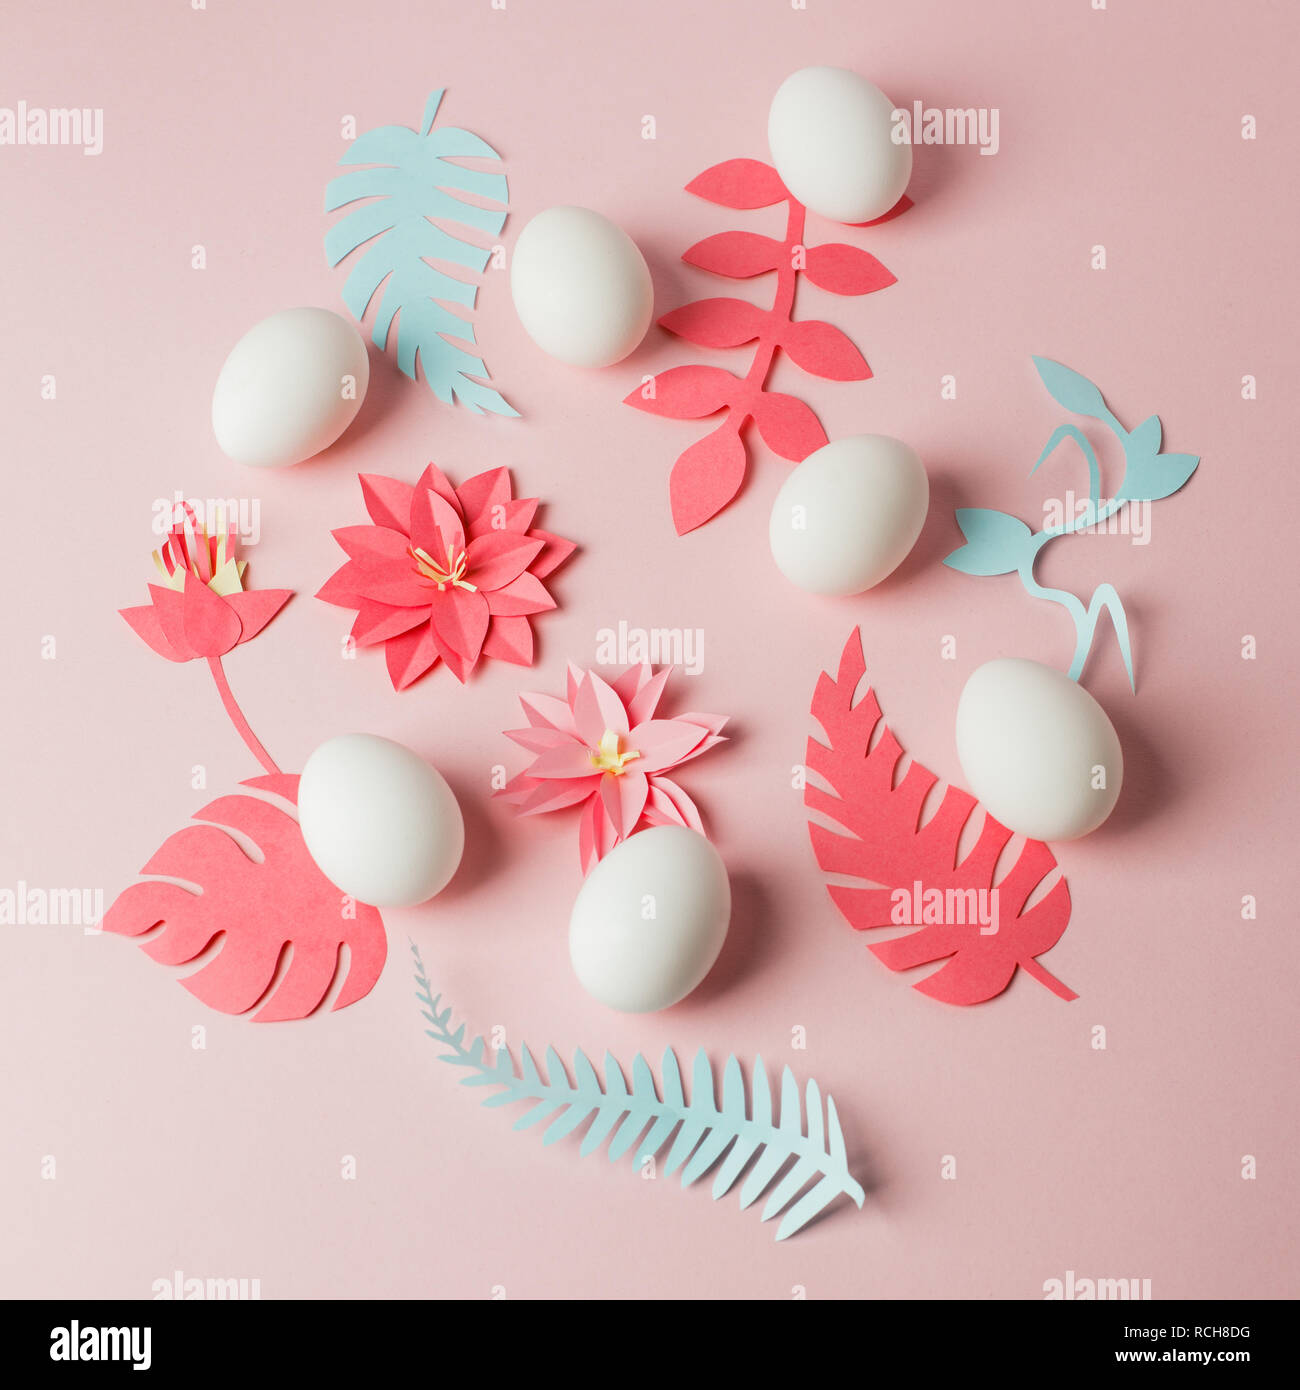 Modern Easter Decor Idea White Eggs And Origami Paper Craft